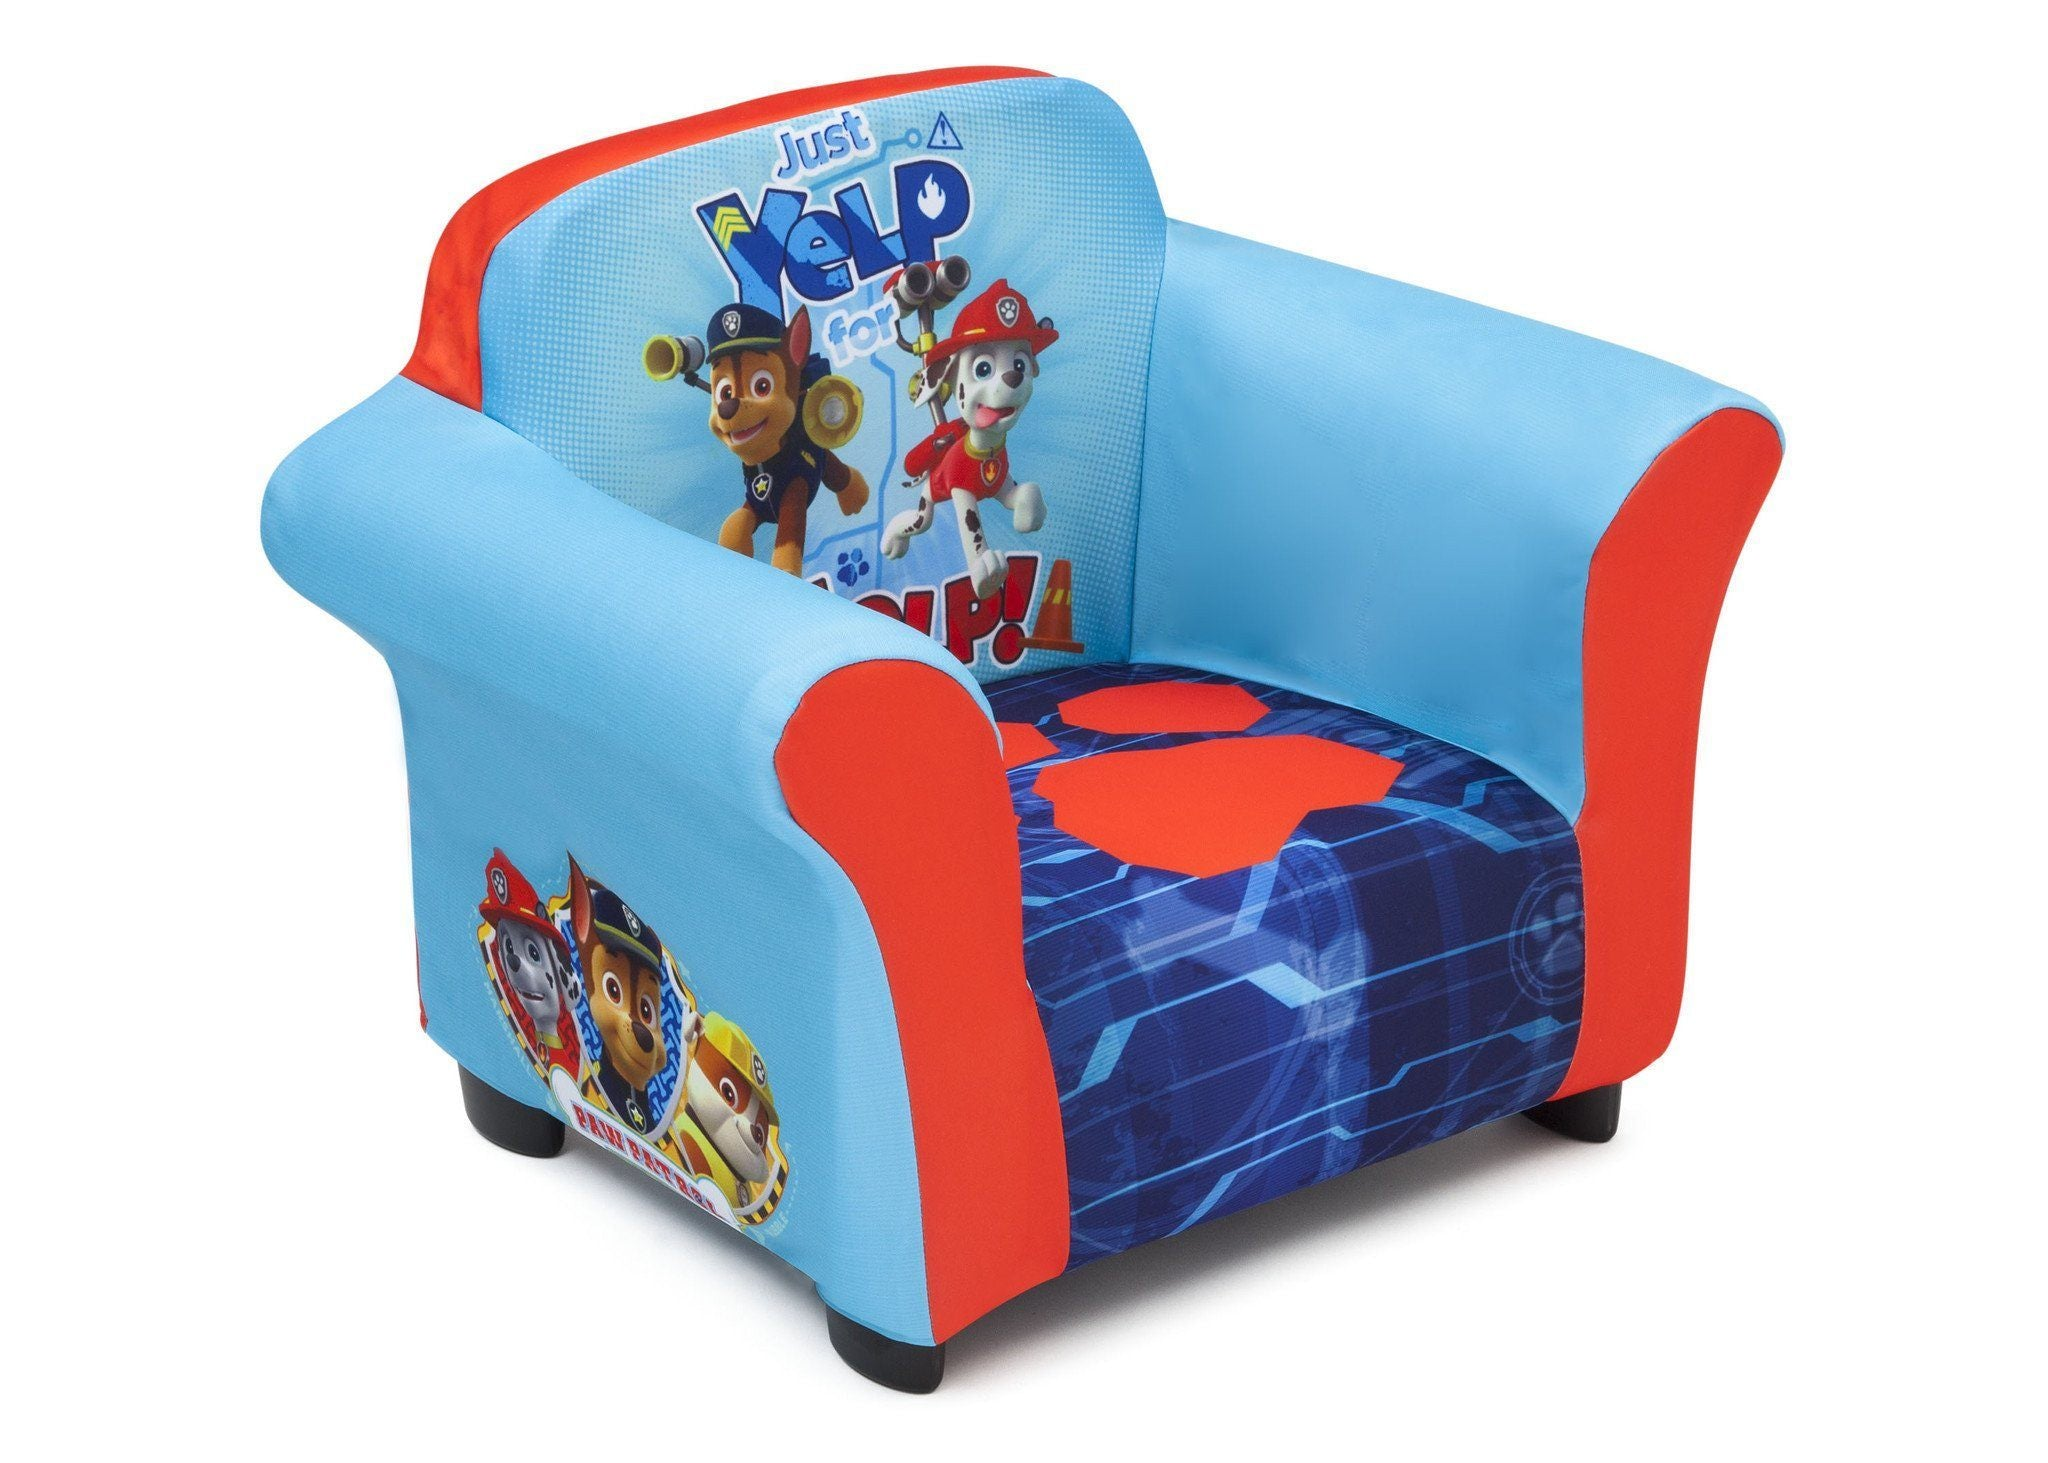 Nick Jr Paw Patrol Upholstered Chair With Sculpted